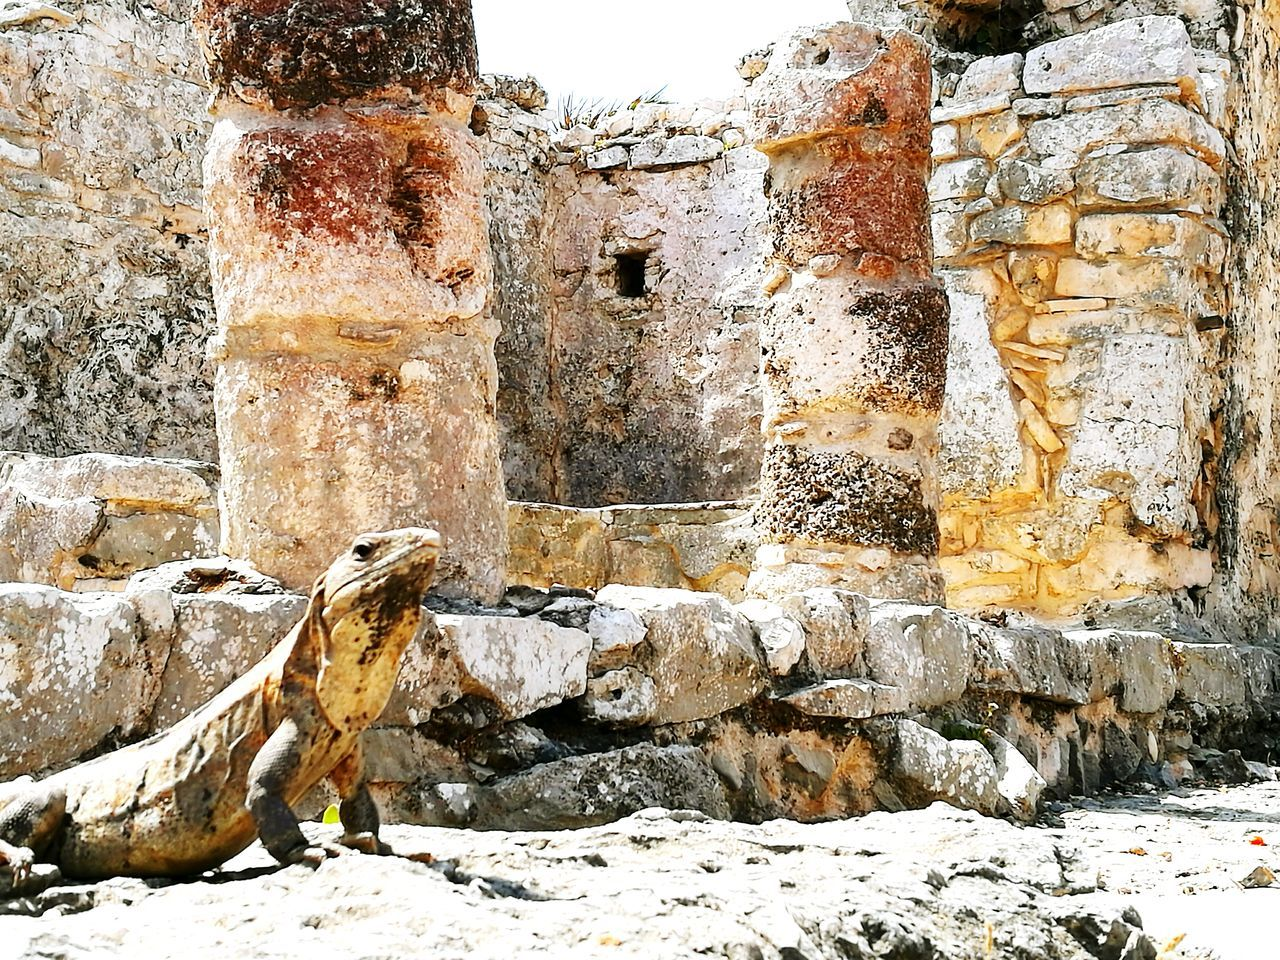 Mexico Cancun Tulum , Rivera Maya. Architecture Mayan Ruins Iguana Wildlife Ancient Architecture Outdoors No People EyeEm Selects